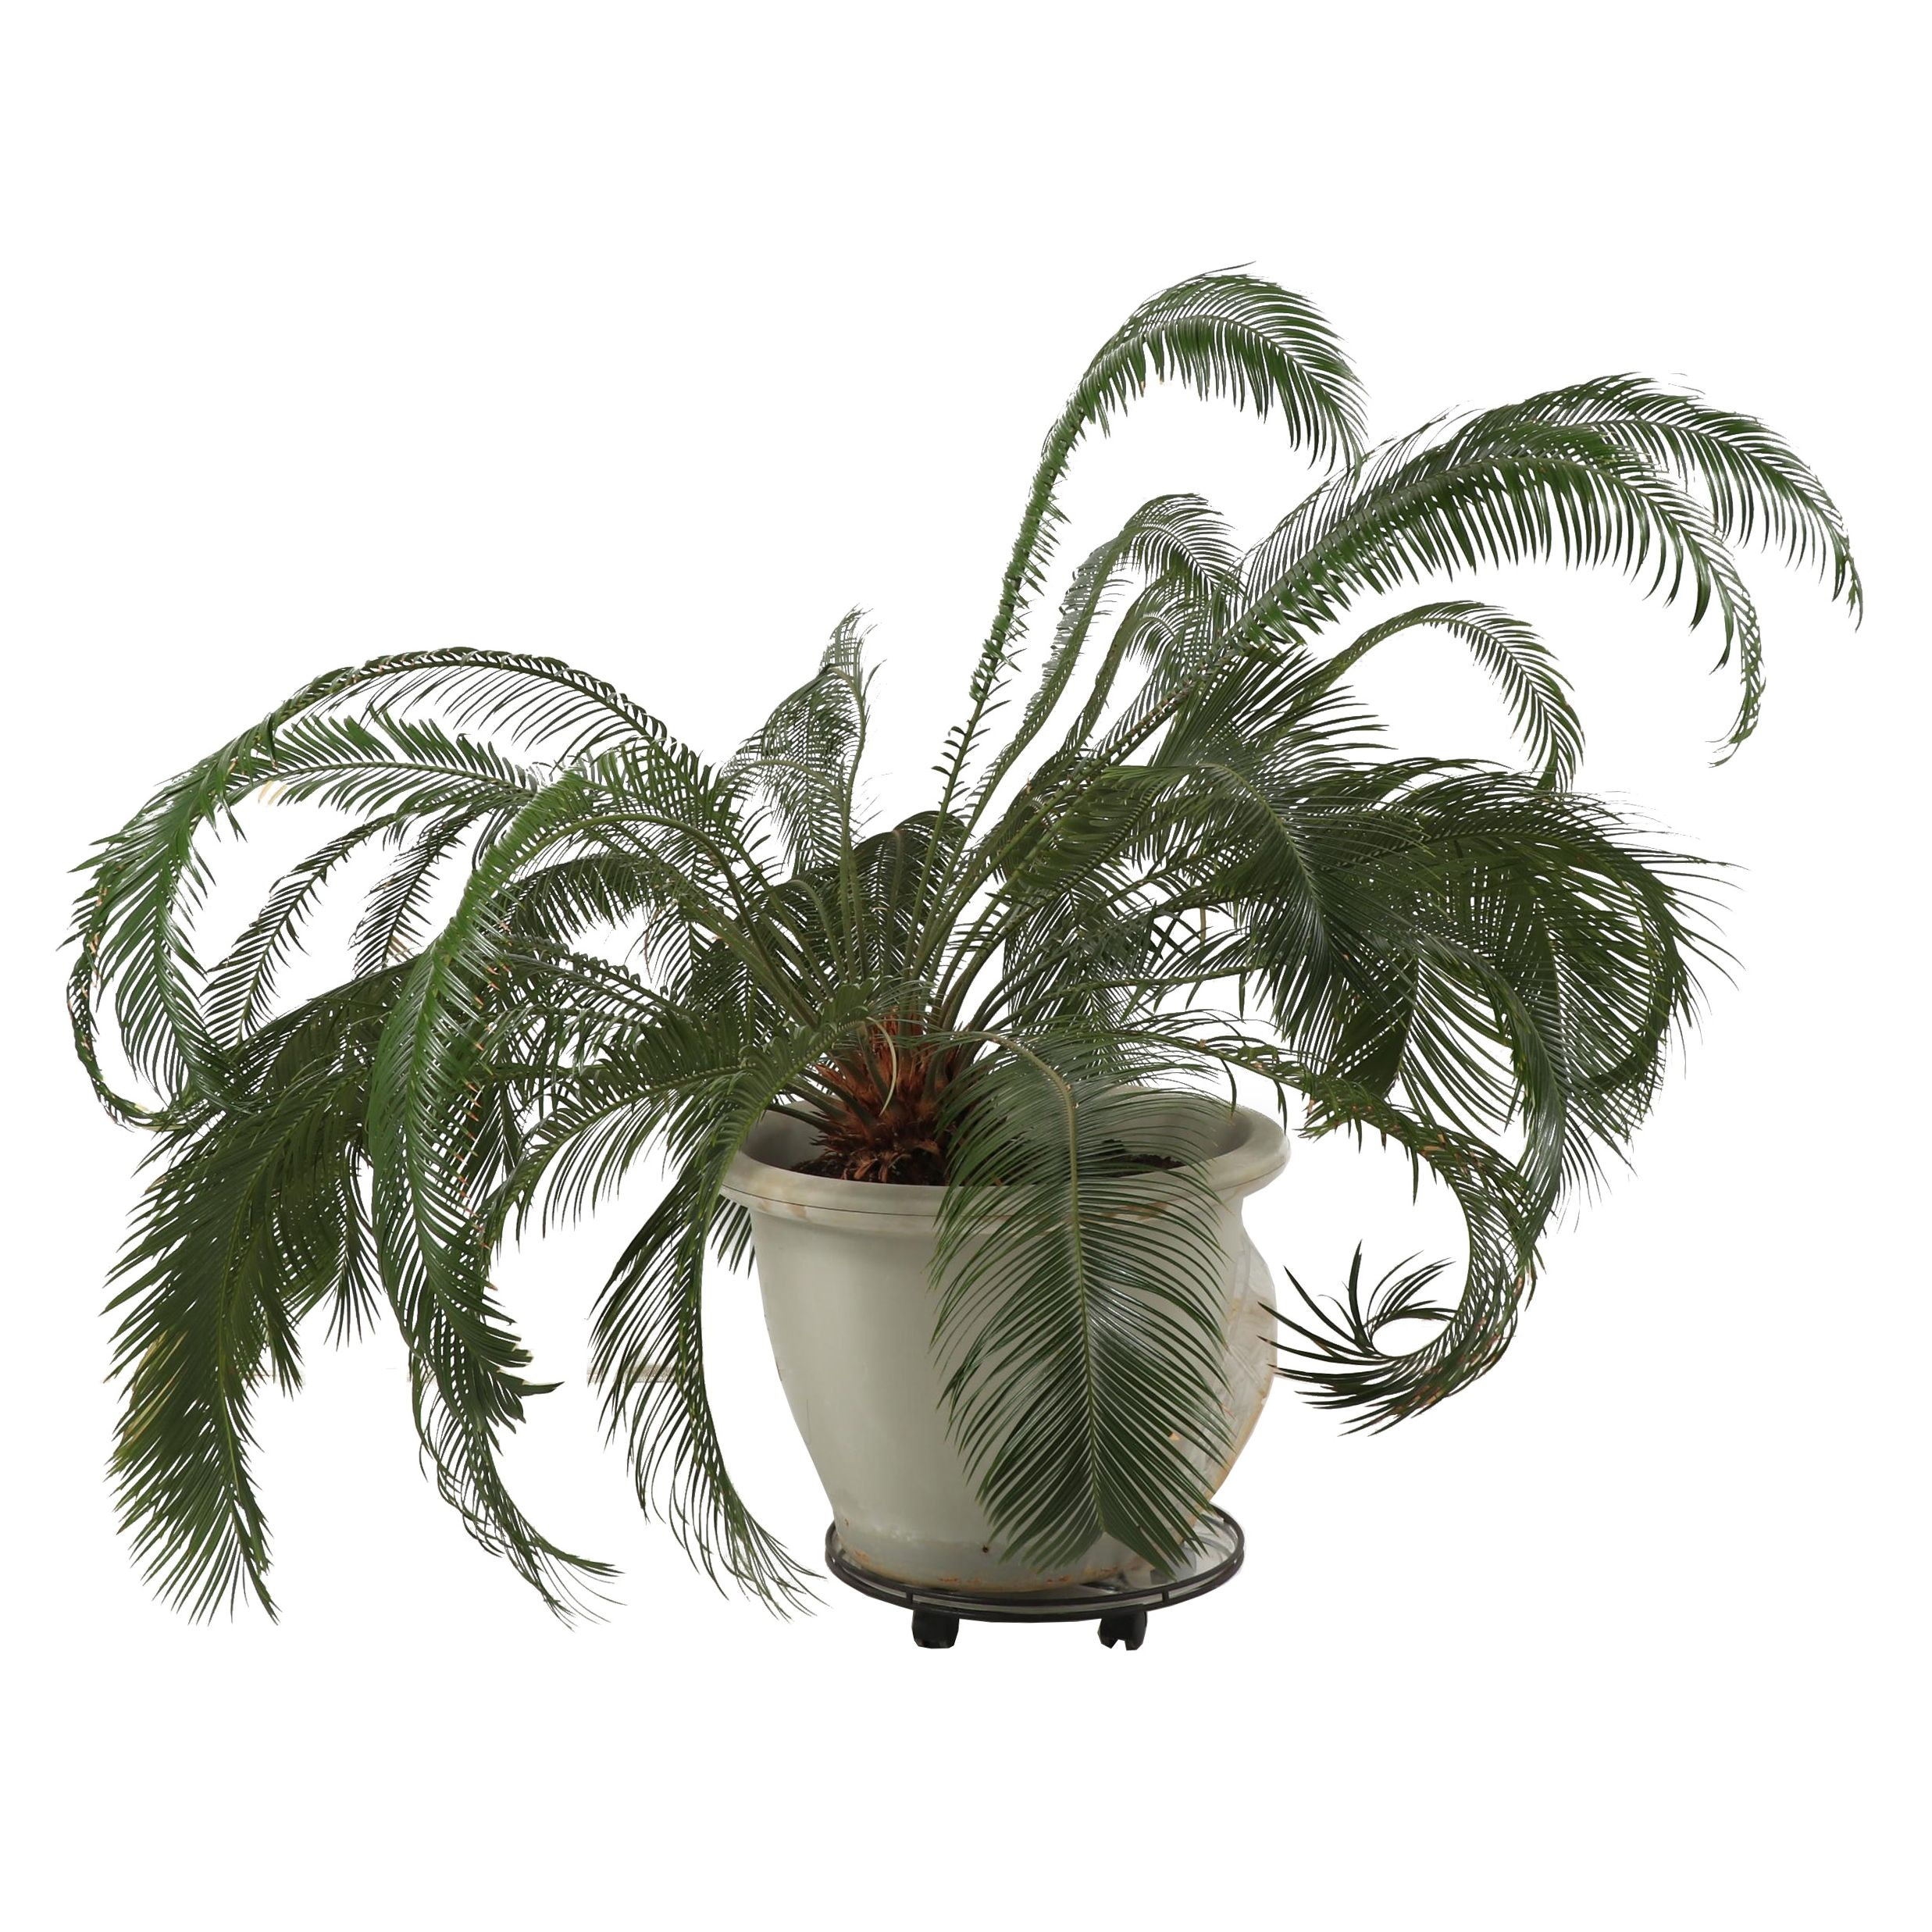 Live Sago Palm Plant in Molded Resin Planter